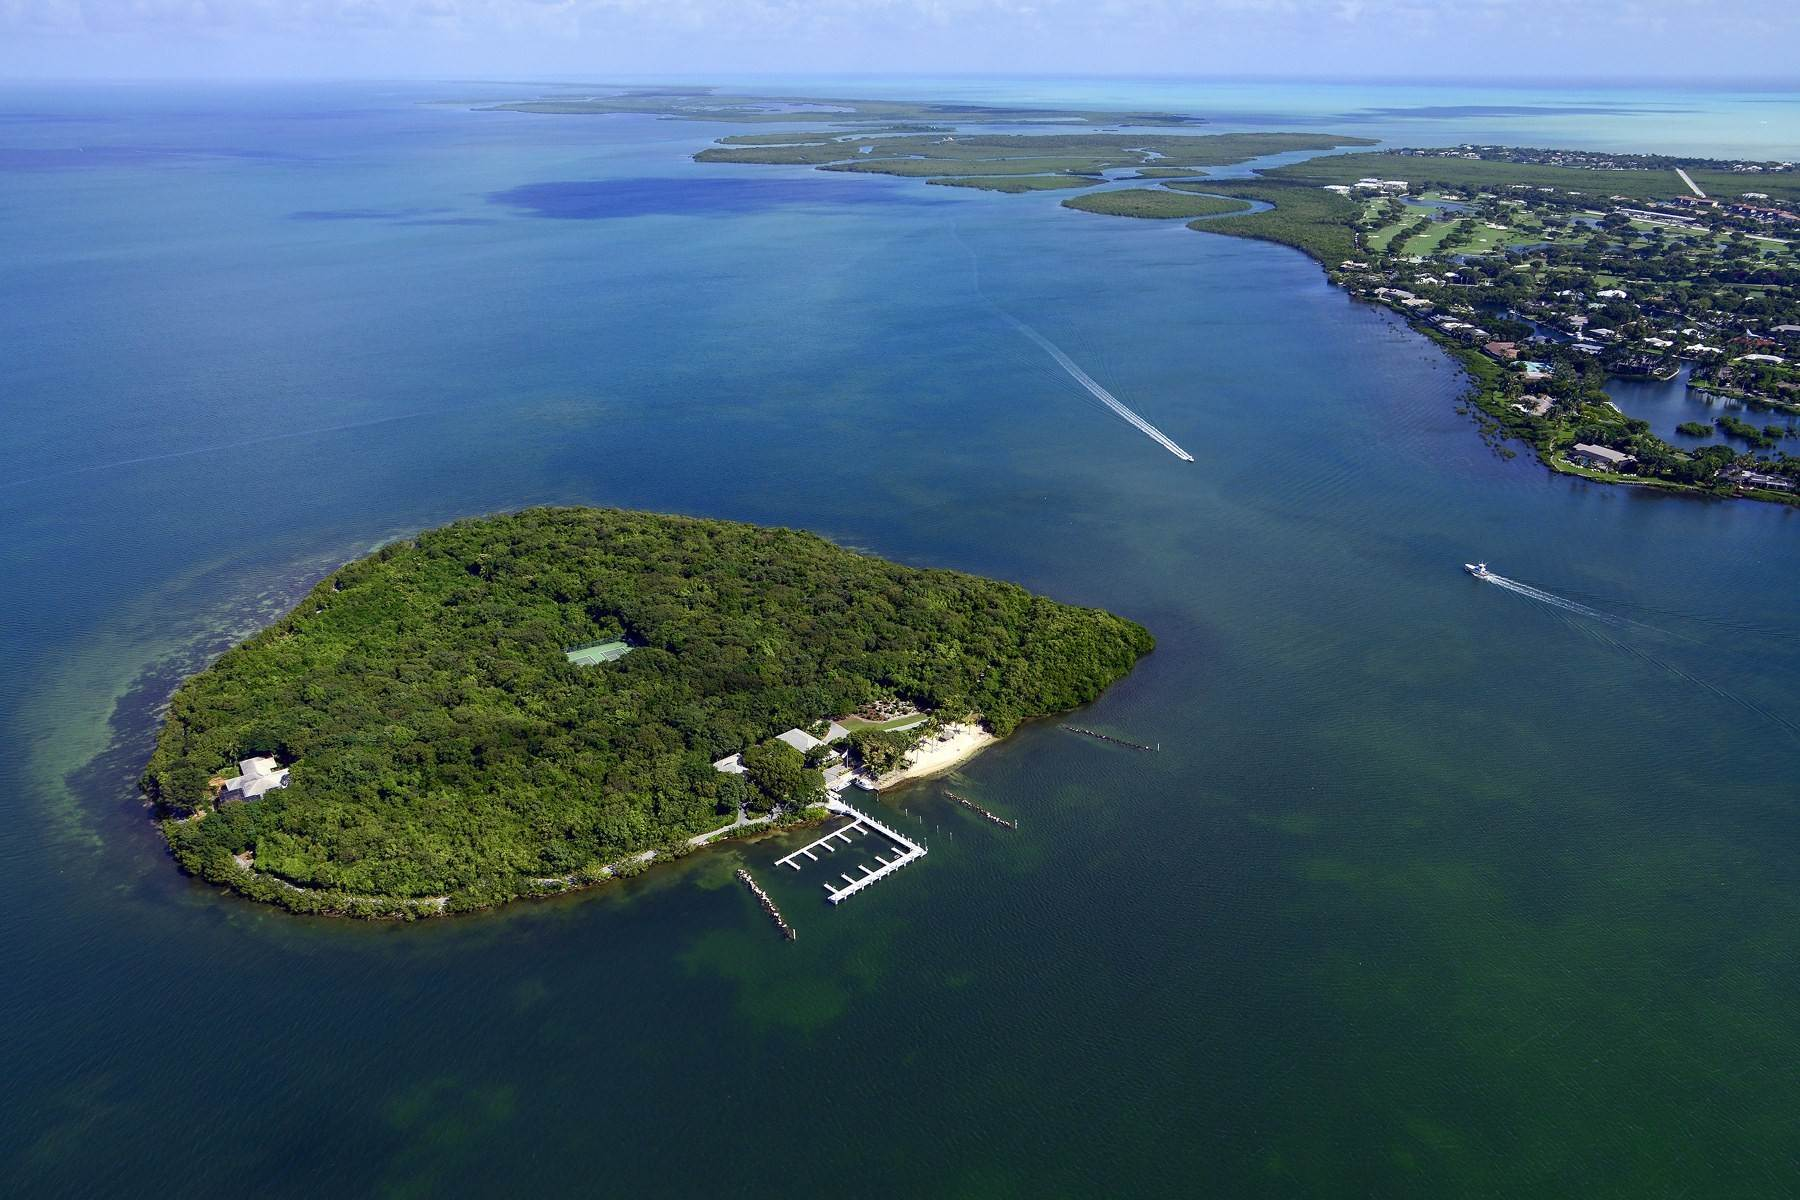 Property for Sale at Pumpkin Key - Private Island, Key Largo, FL Key Largo, Florida 33037 United States